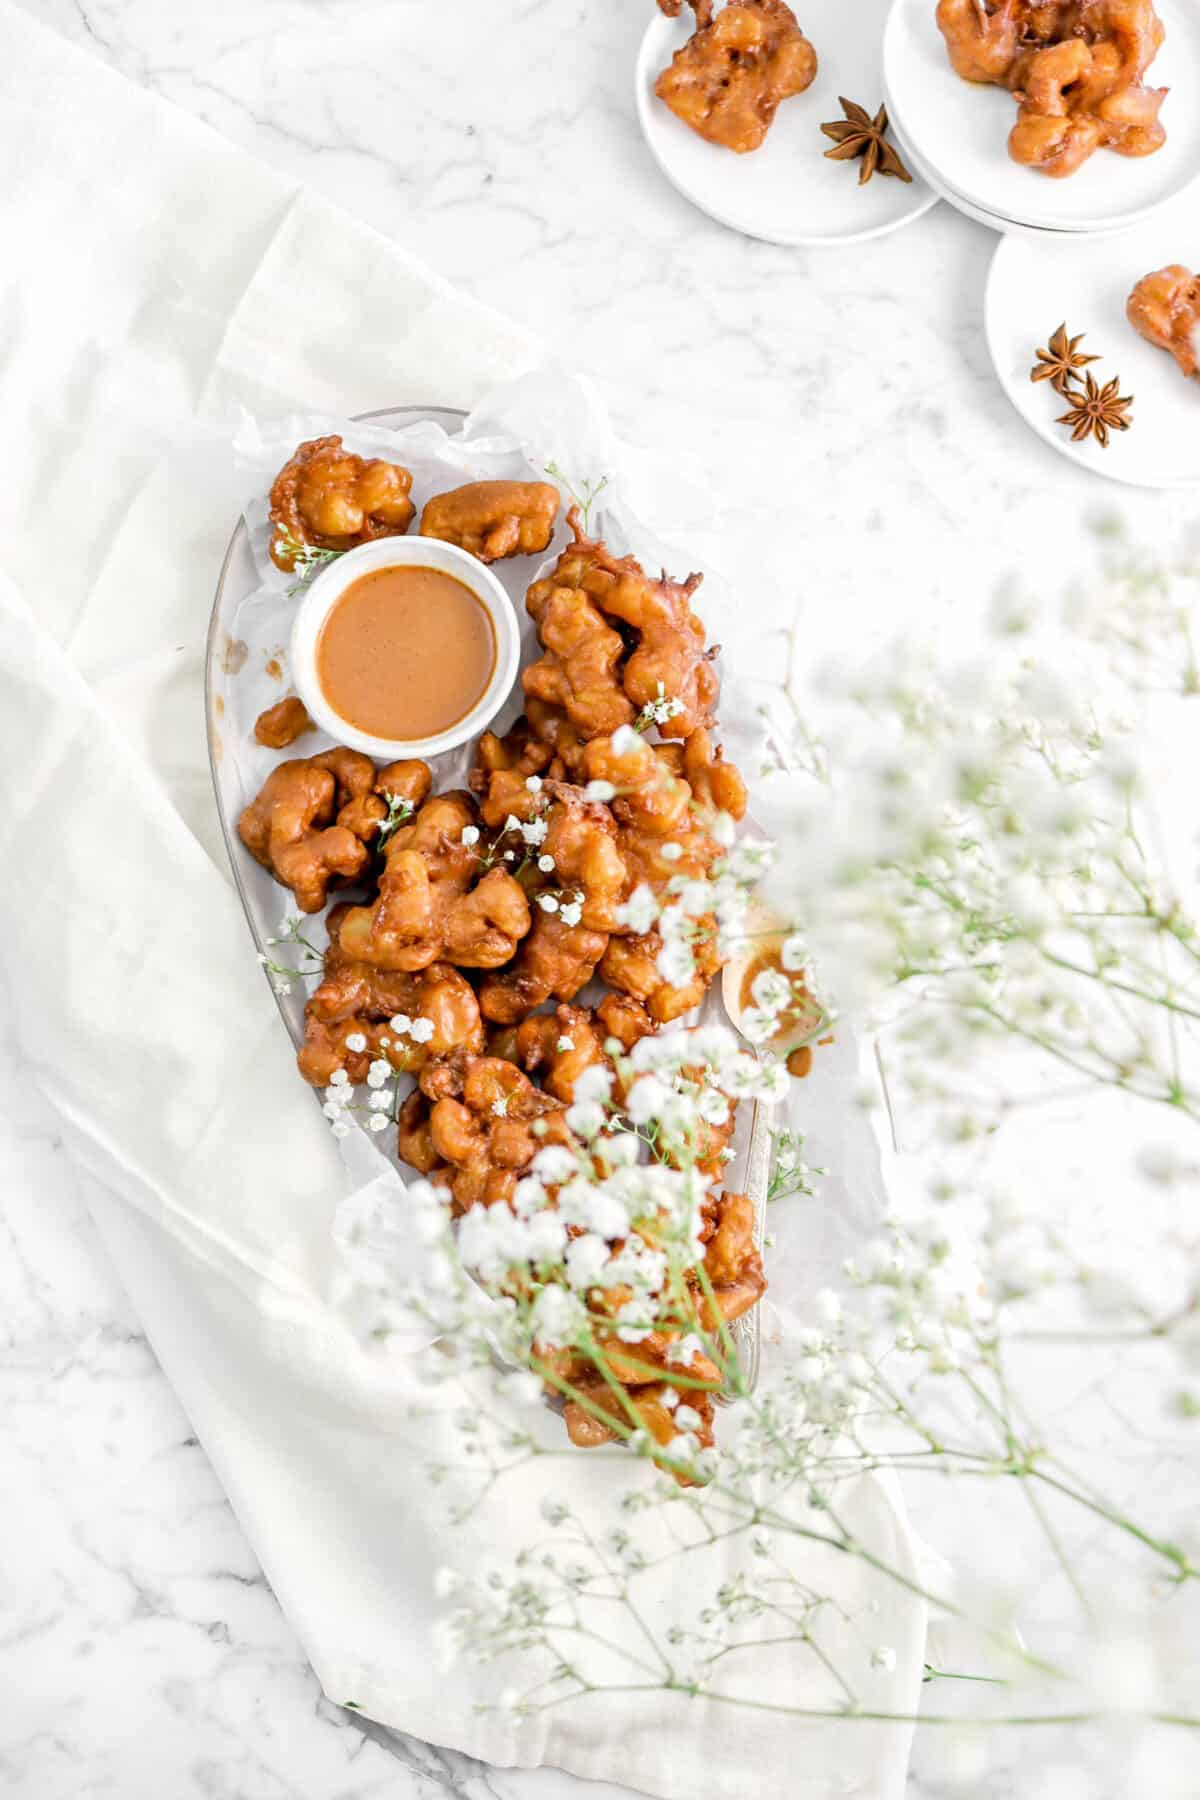 apple pie fritters on a plate with flowers over it, a napkin, and three plates